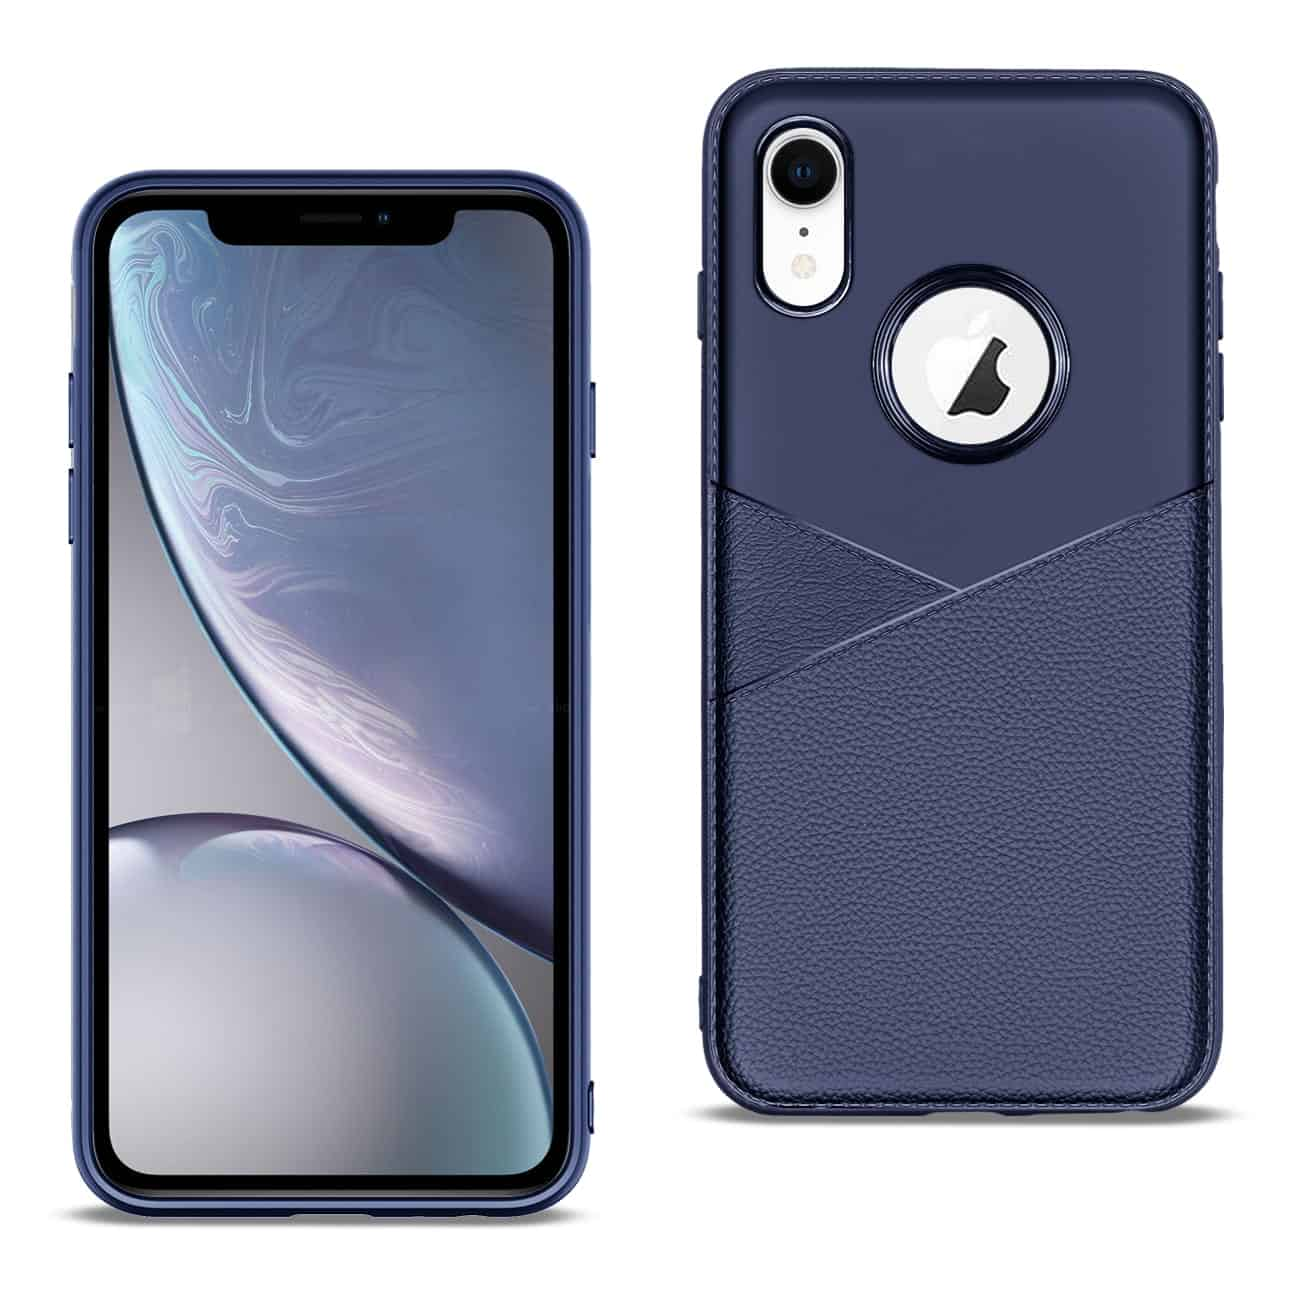 iPhone X Soft Case in Blue